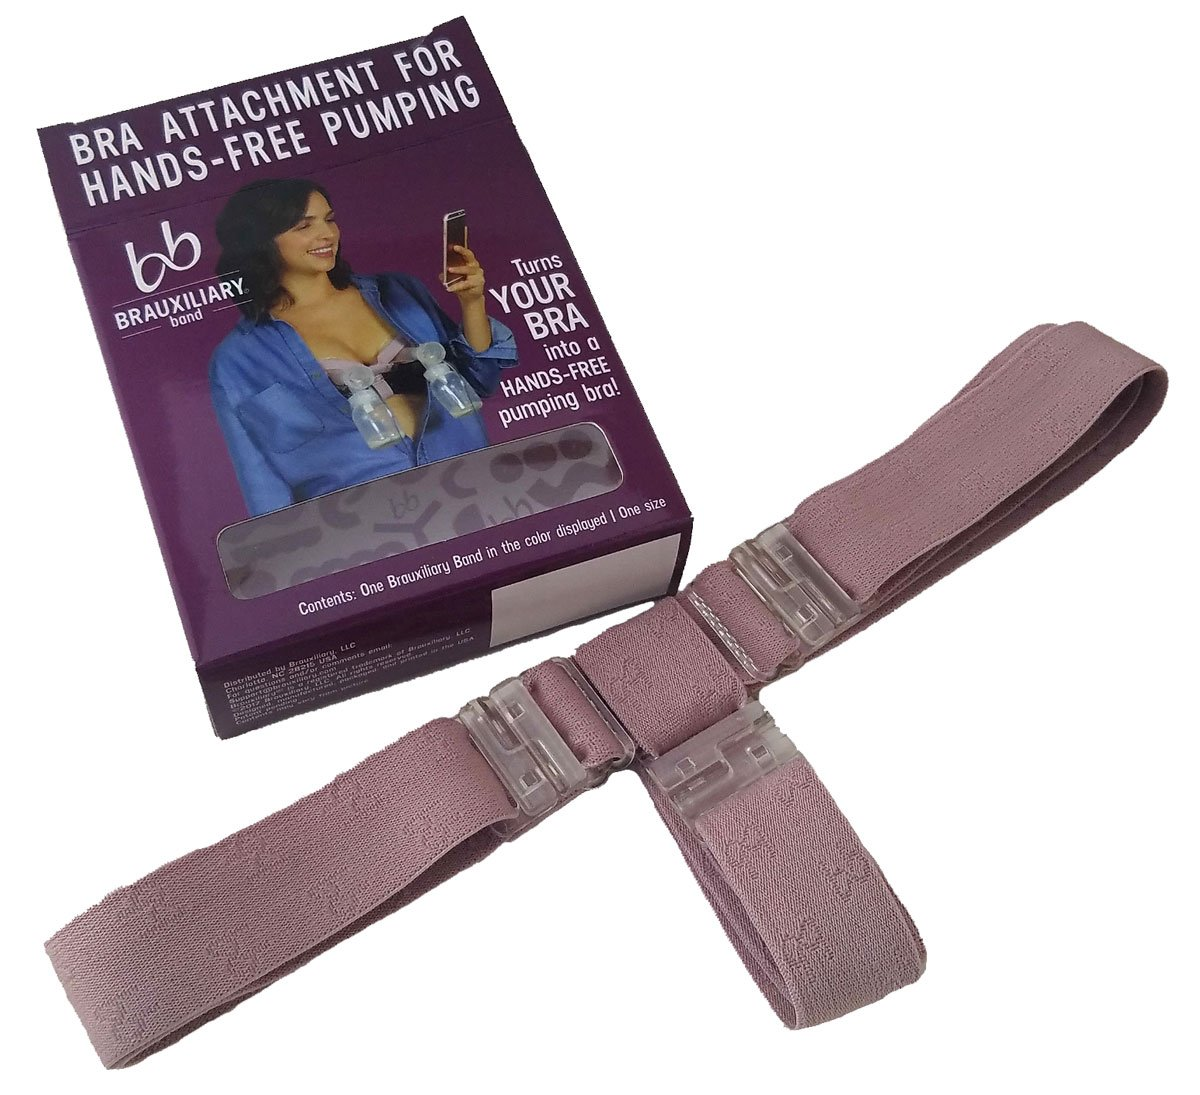 39e2f208346db Amazon.com: Brauxiliary Hands Free Pumping Band - Works With Your Bra!  (Sand): Baby